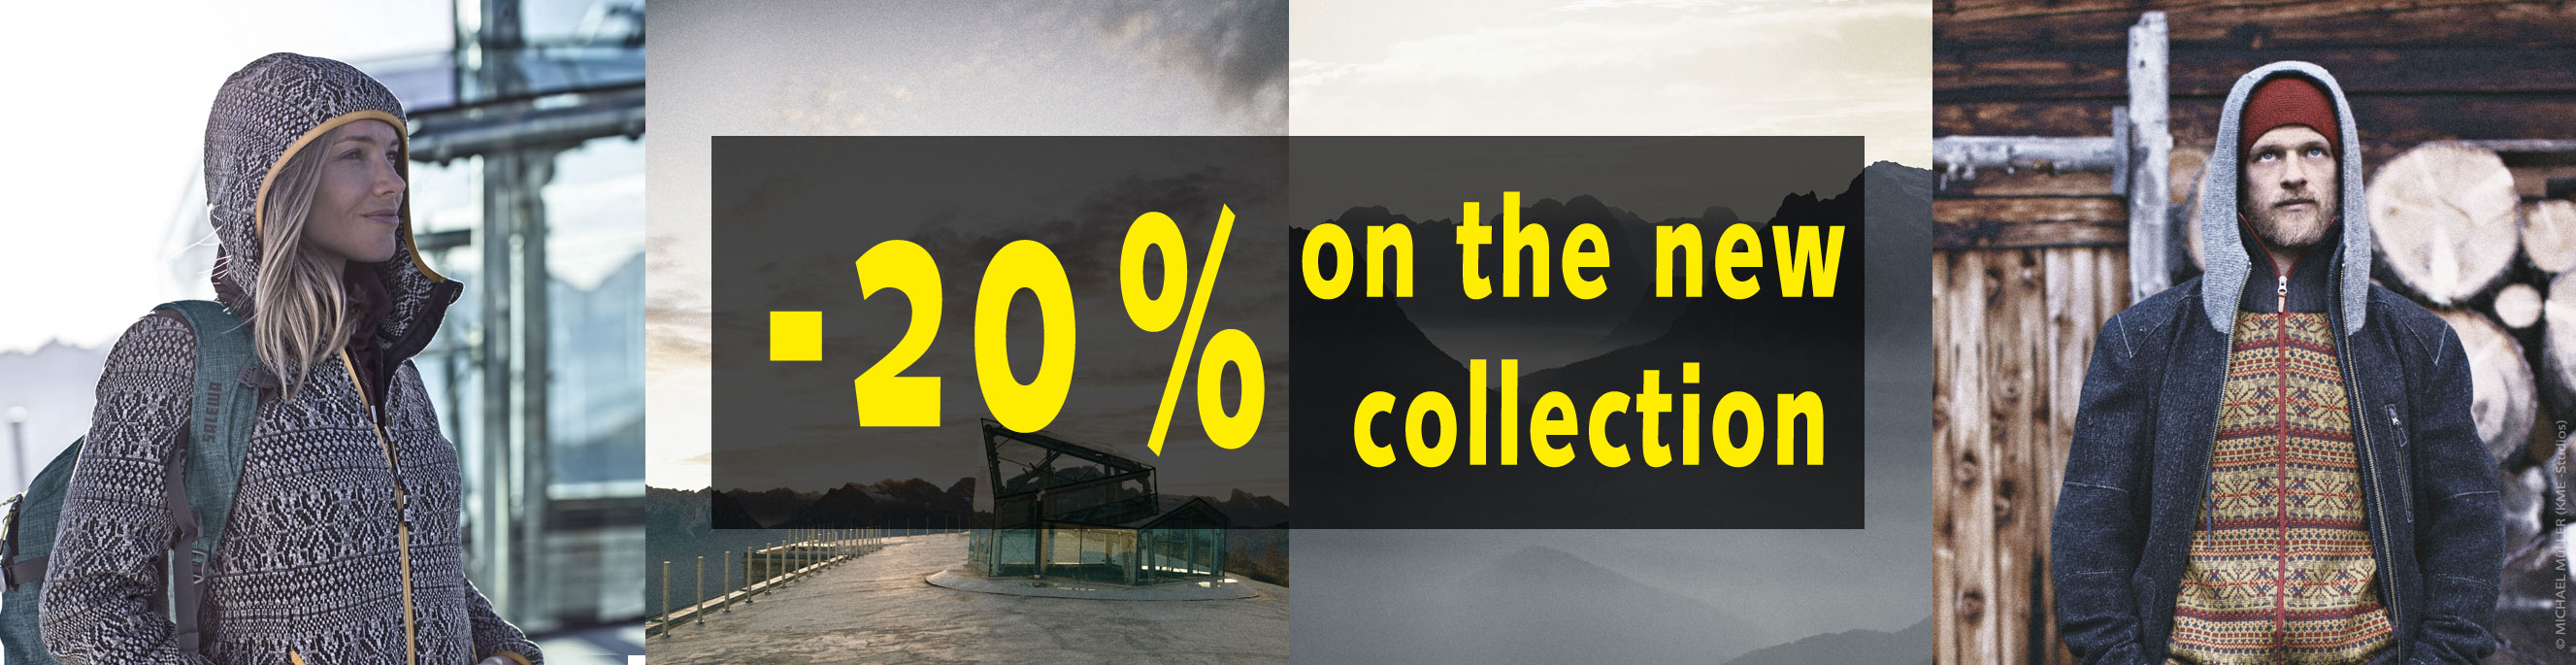 -20% on the new collection